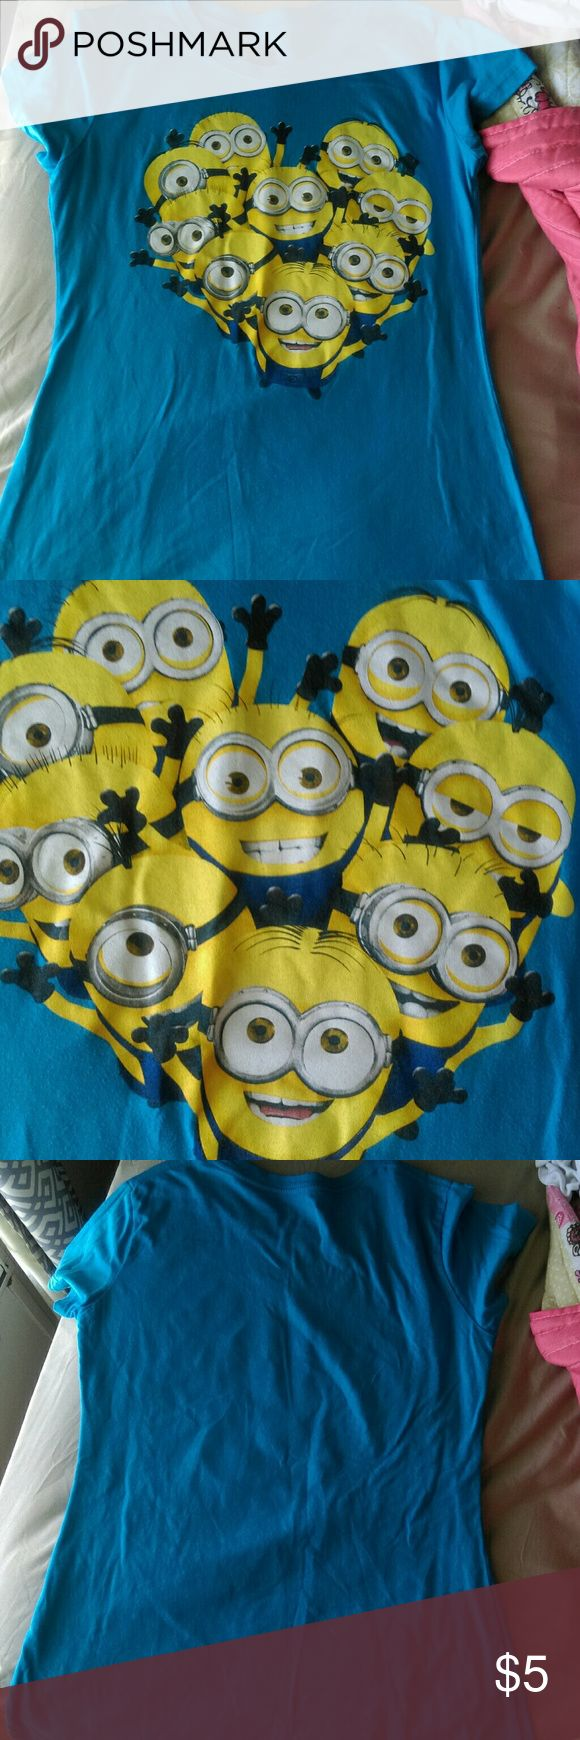 Blue minions shirt A a cute minion shirt the minions are in the shape of a heart 60%cotton 40% Polyester Tops Tees - Short Sleeve